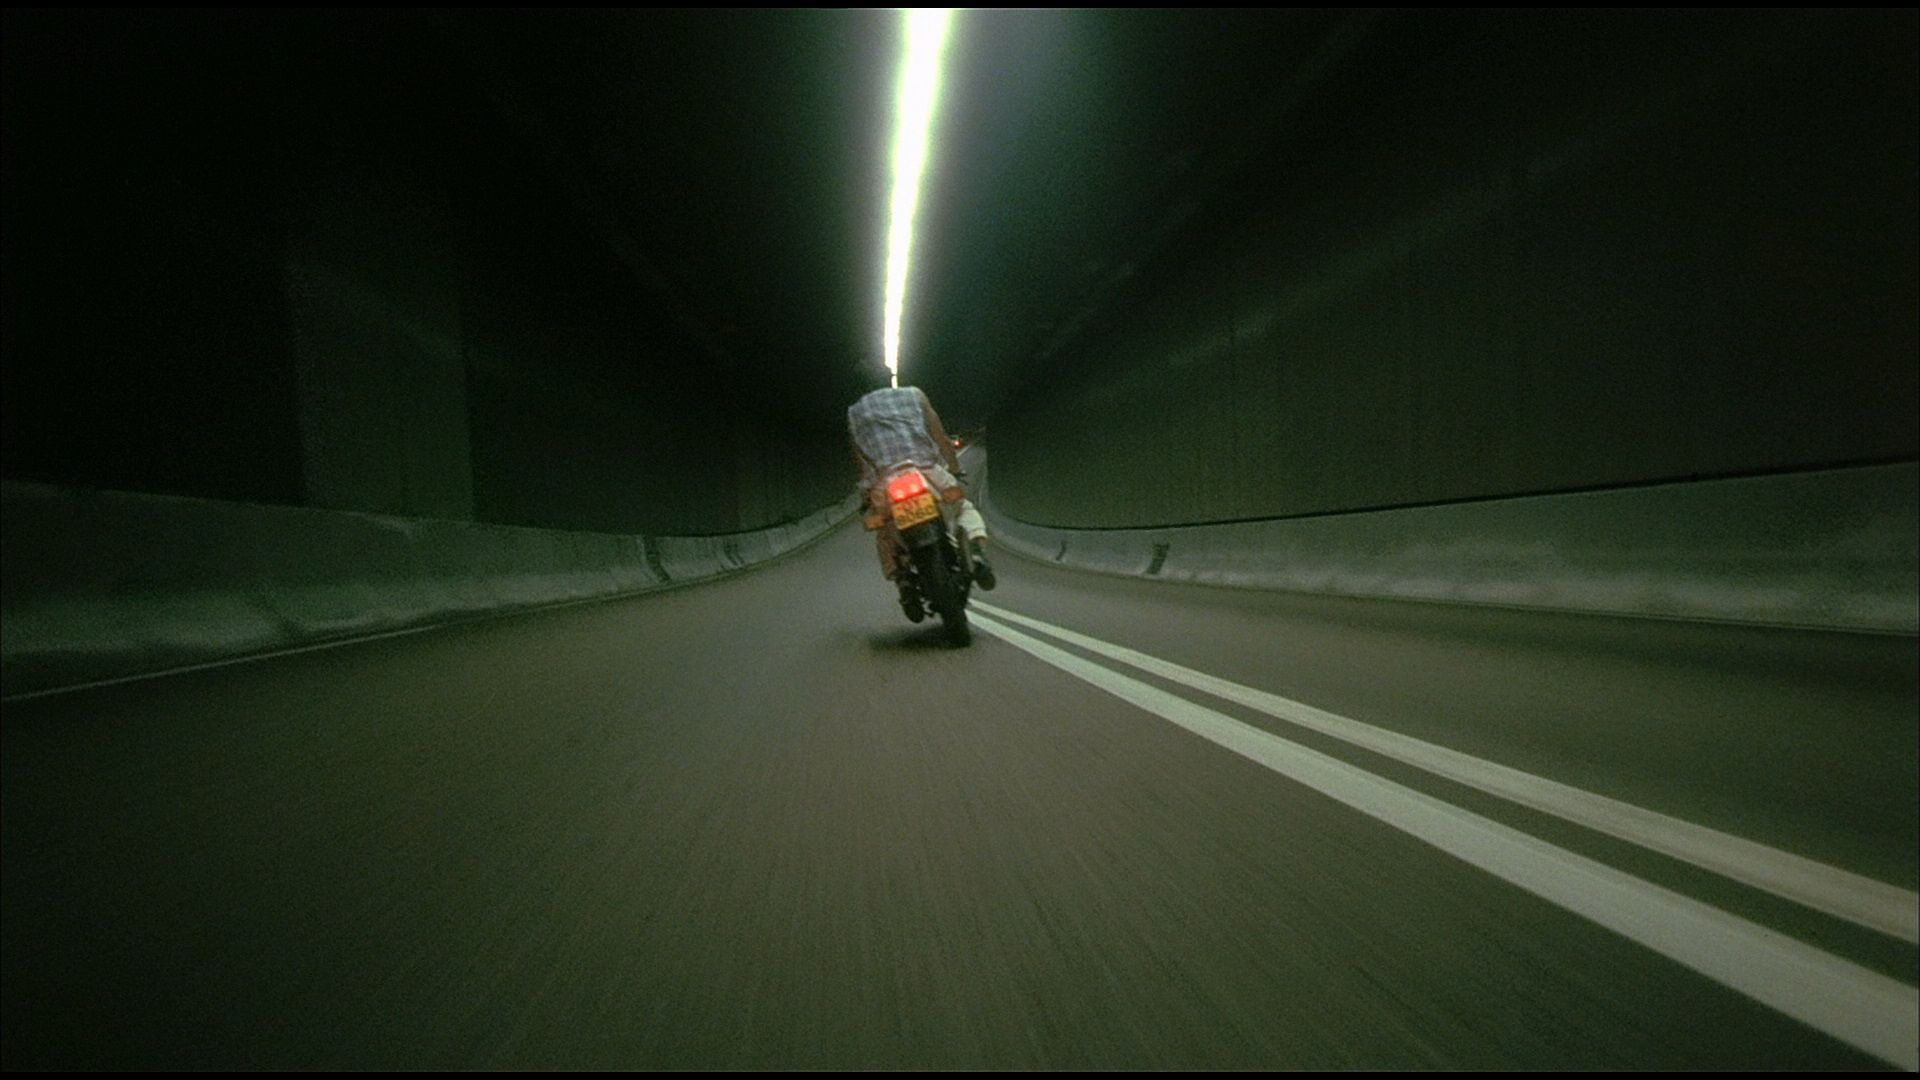 fallen angels motorcycle scene proj cyber war an essay about cinematographer christopher doyle for imaging technologies m rafla